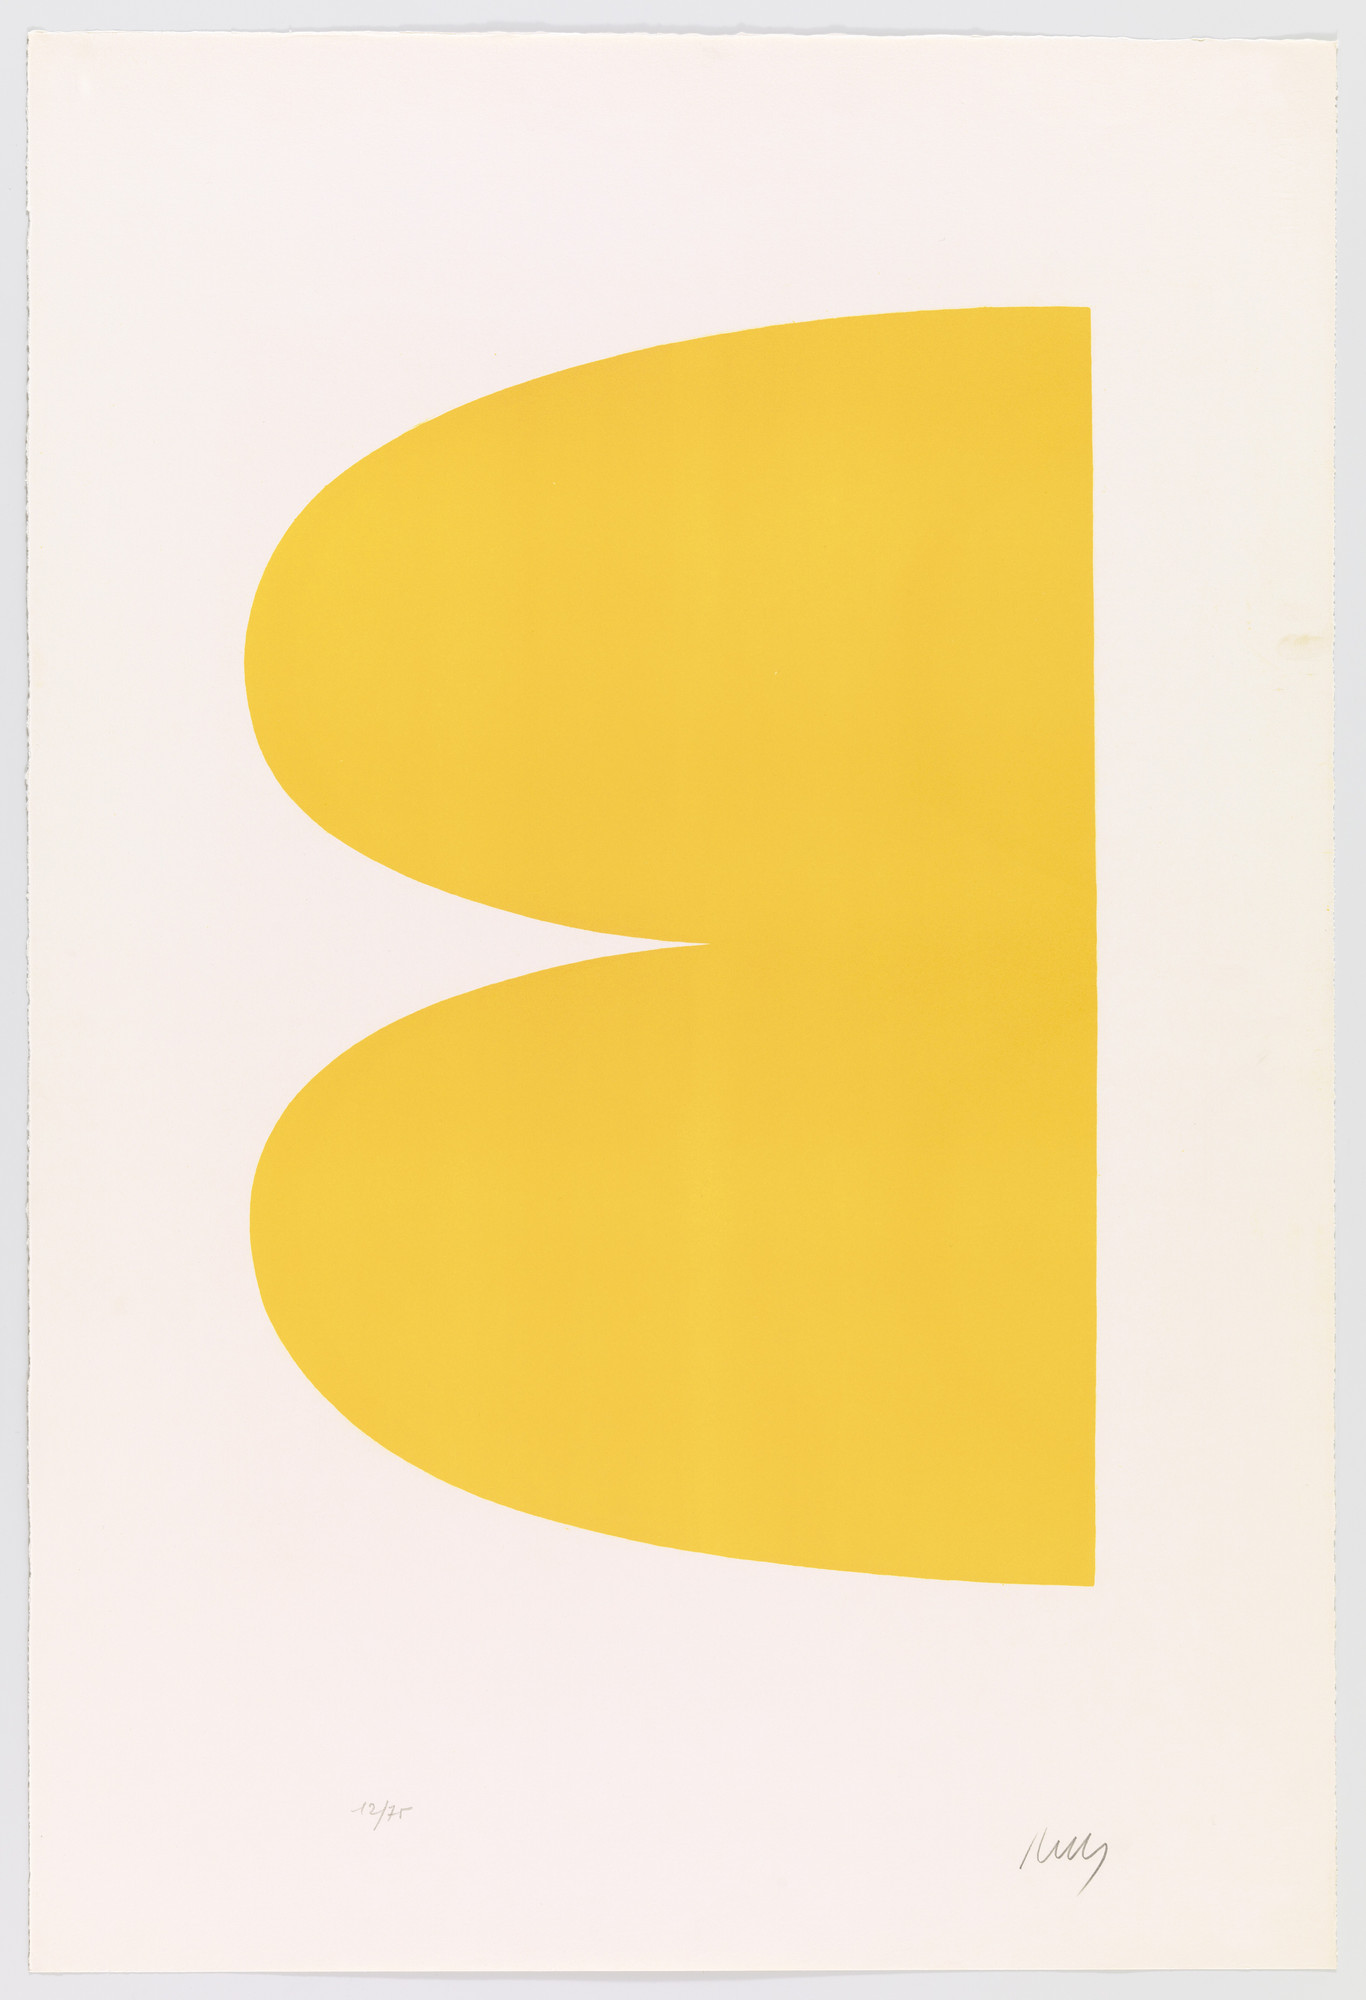 Ellsworth Kelly. Yellow (Jaune) from Suite of Twenty-Seven Color Lithographs. 1964–65